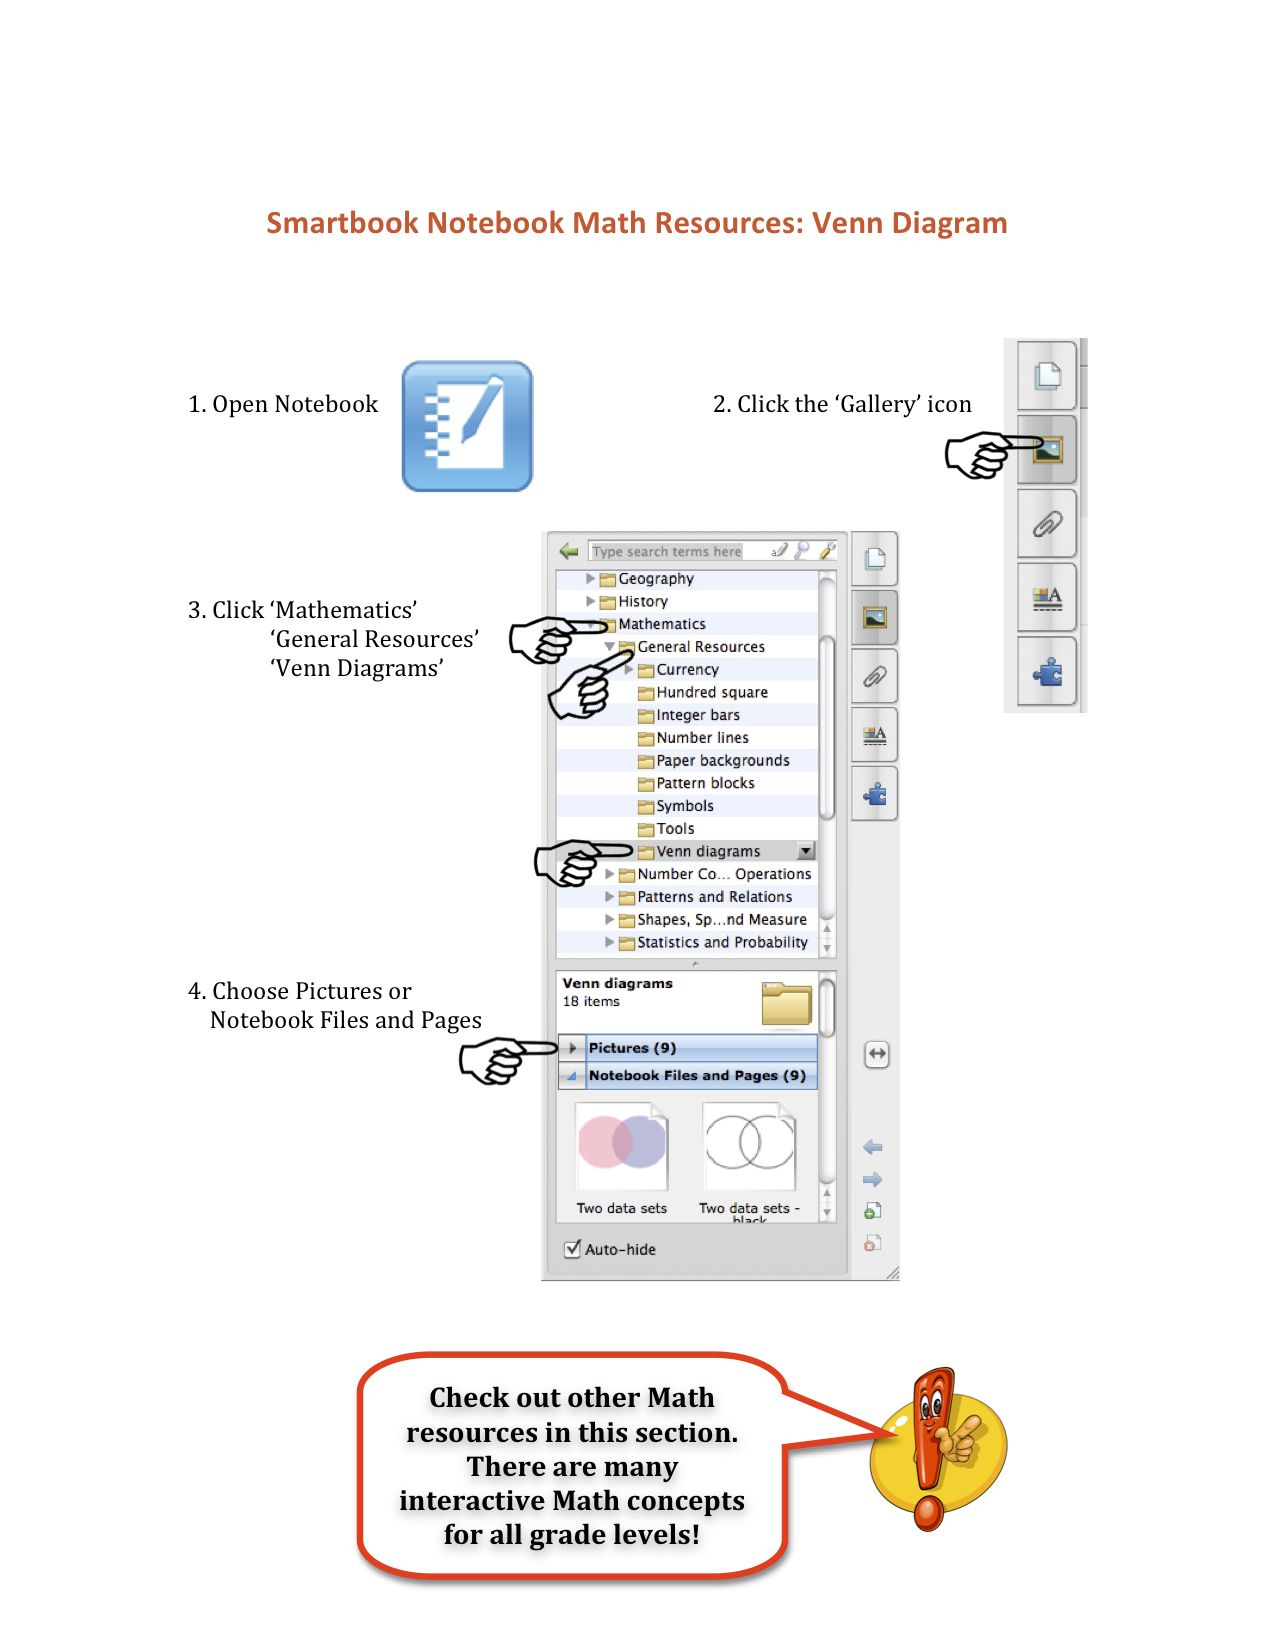 Smartboard Notebook Resources For Math Venn Diagrams Are